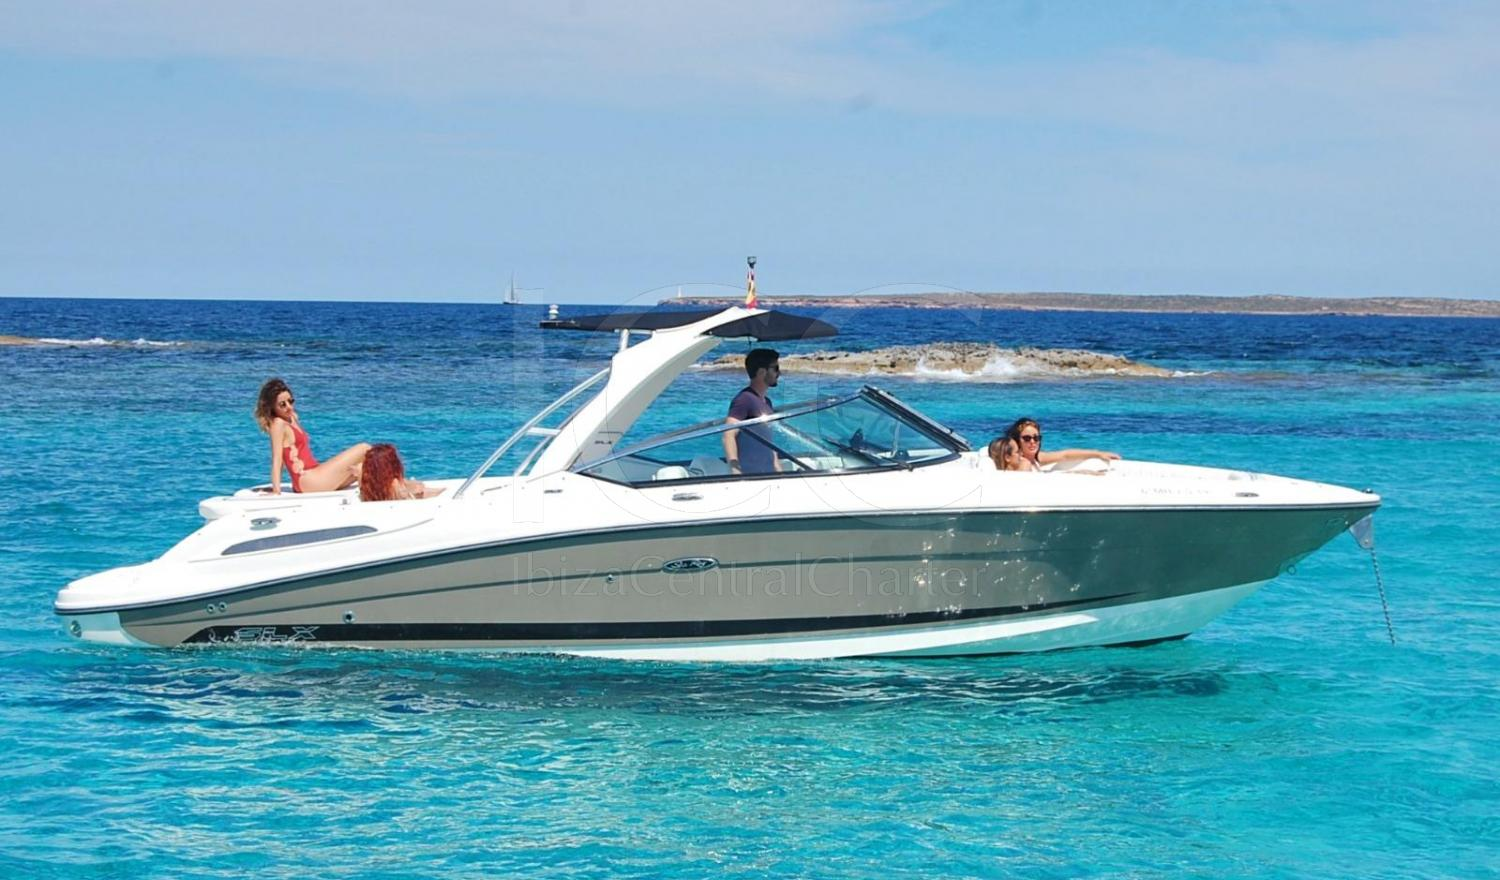 Sea Ray 270 for 9 people with skipper